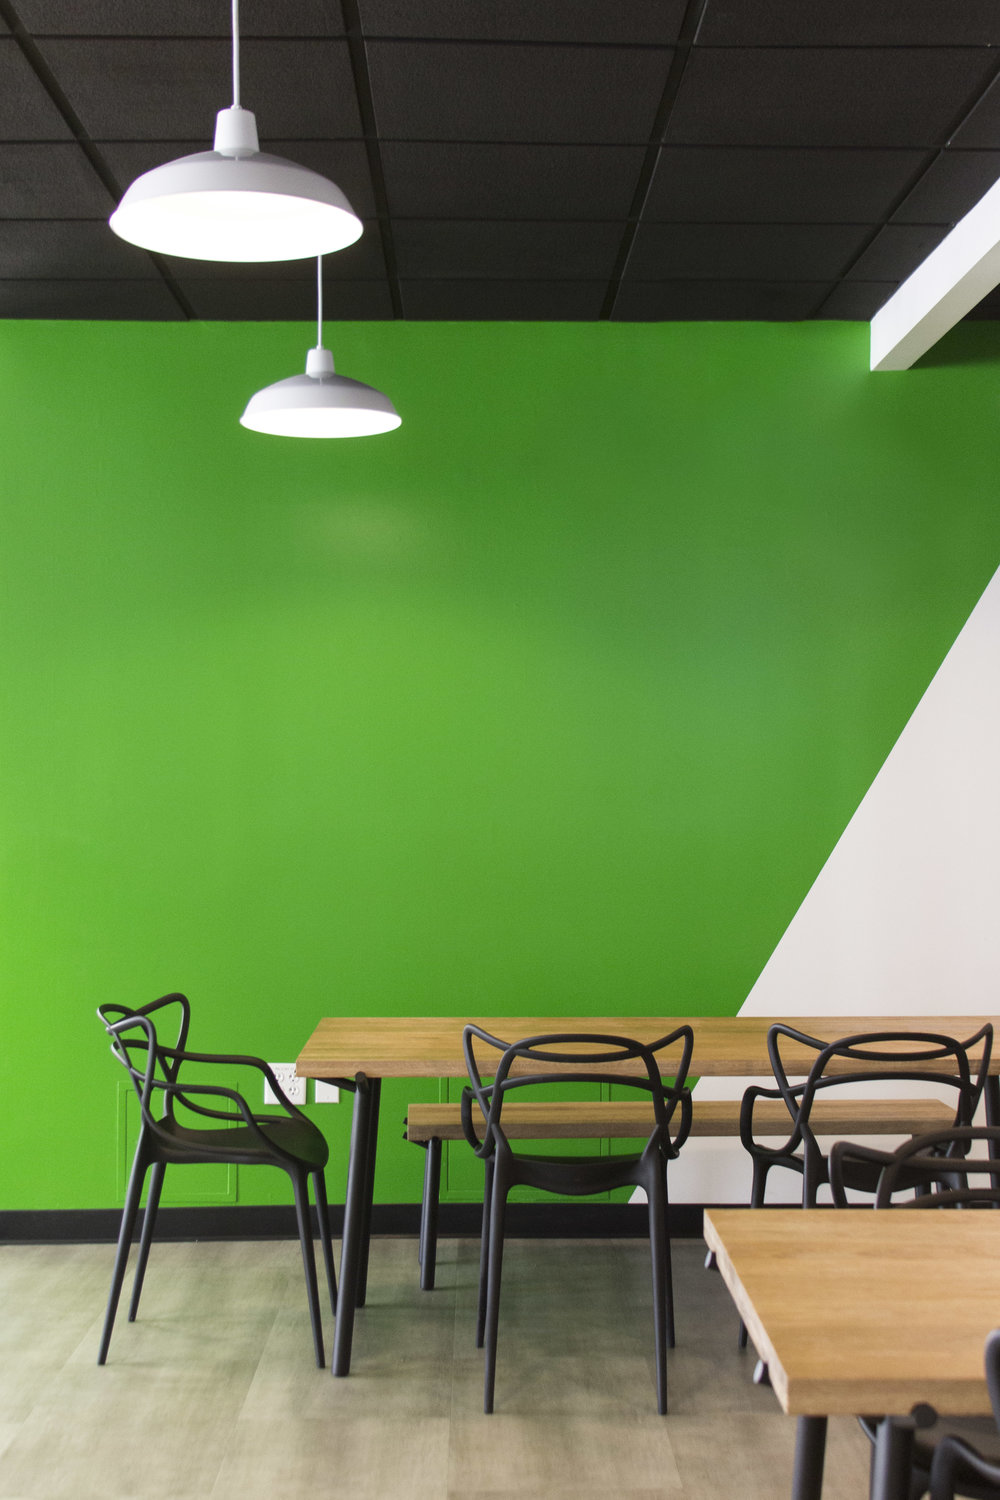 Duo Security San Mateo Office - By Synecdoche Design Studio